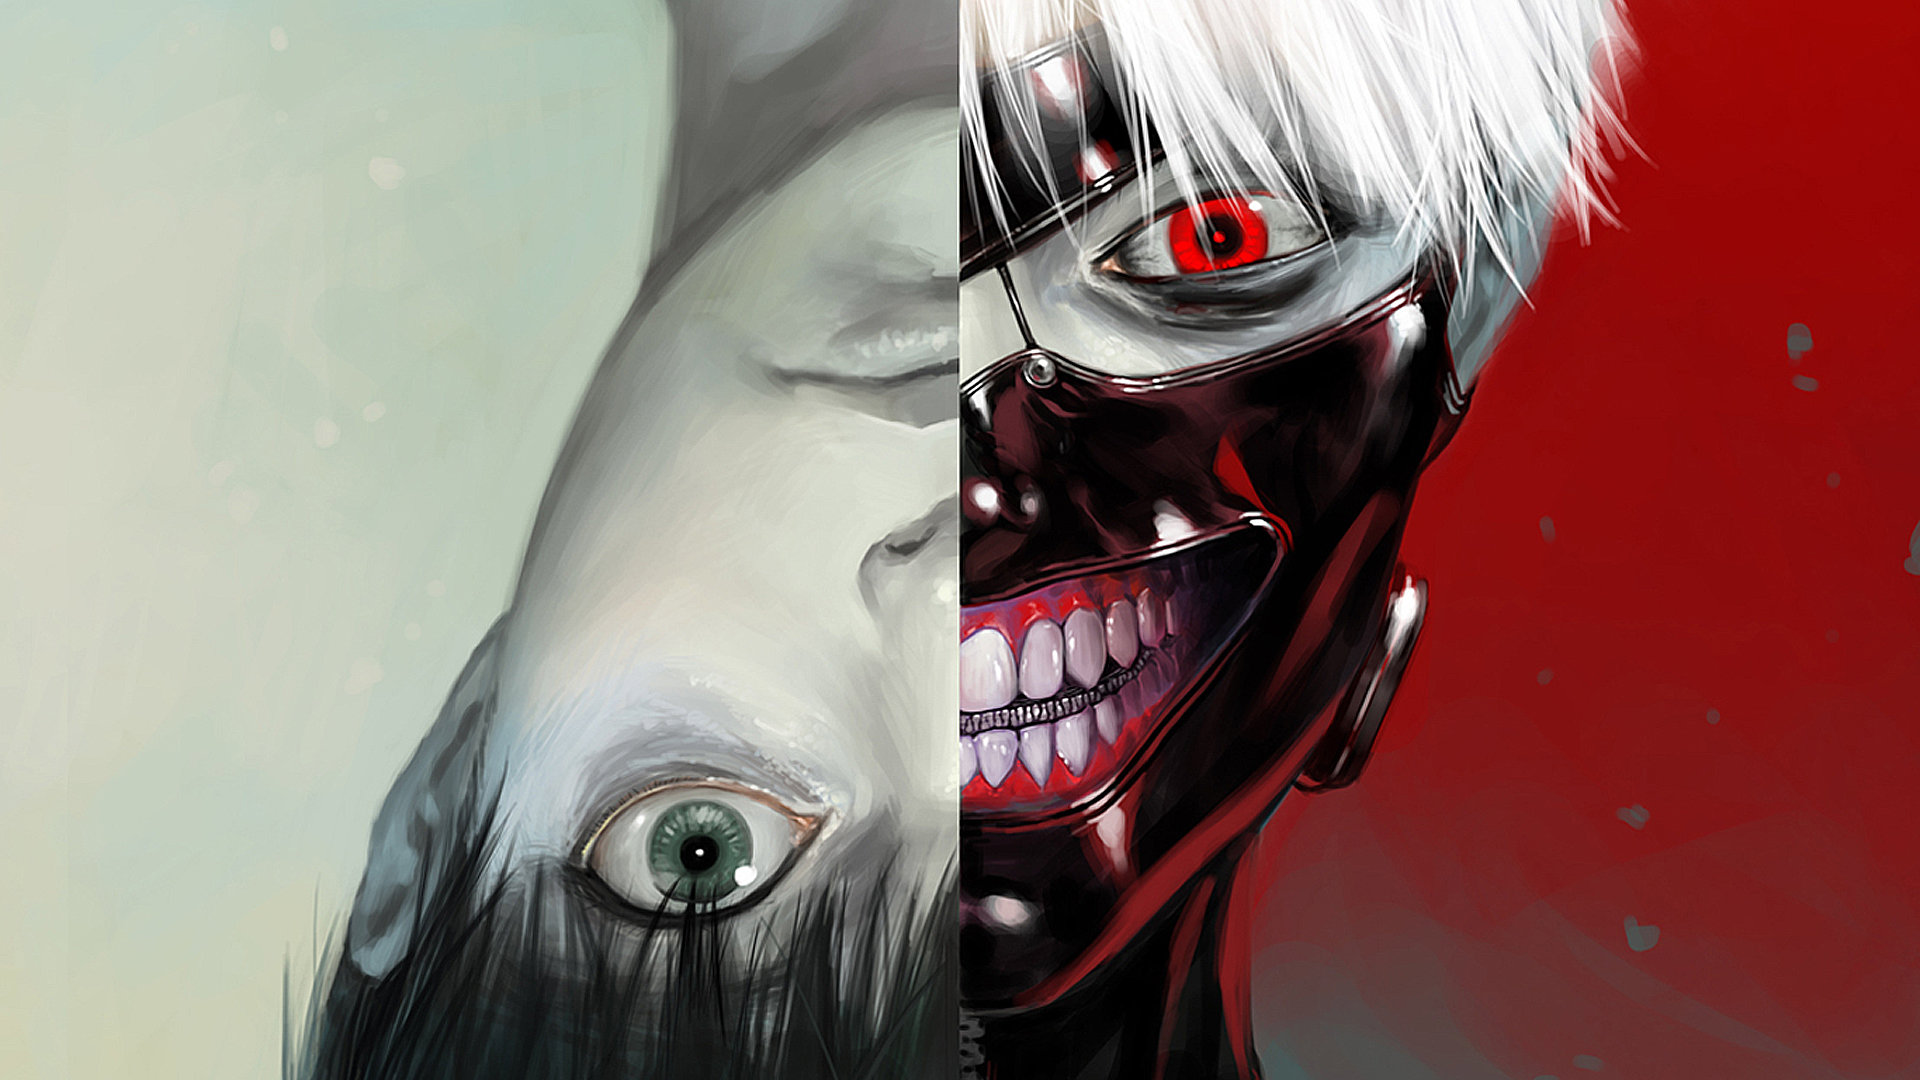 Free Ken Kaneki high quality wallpaper ID:150154 for full hd 1080p PC